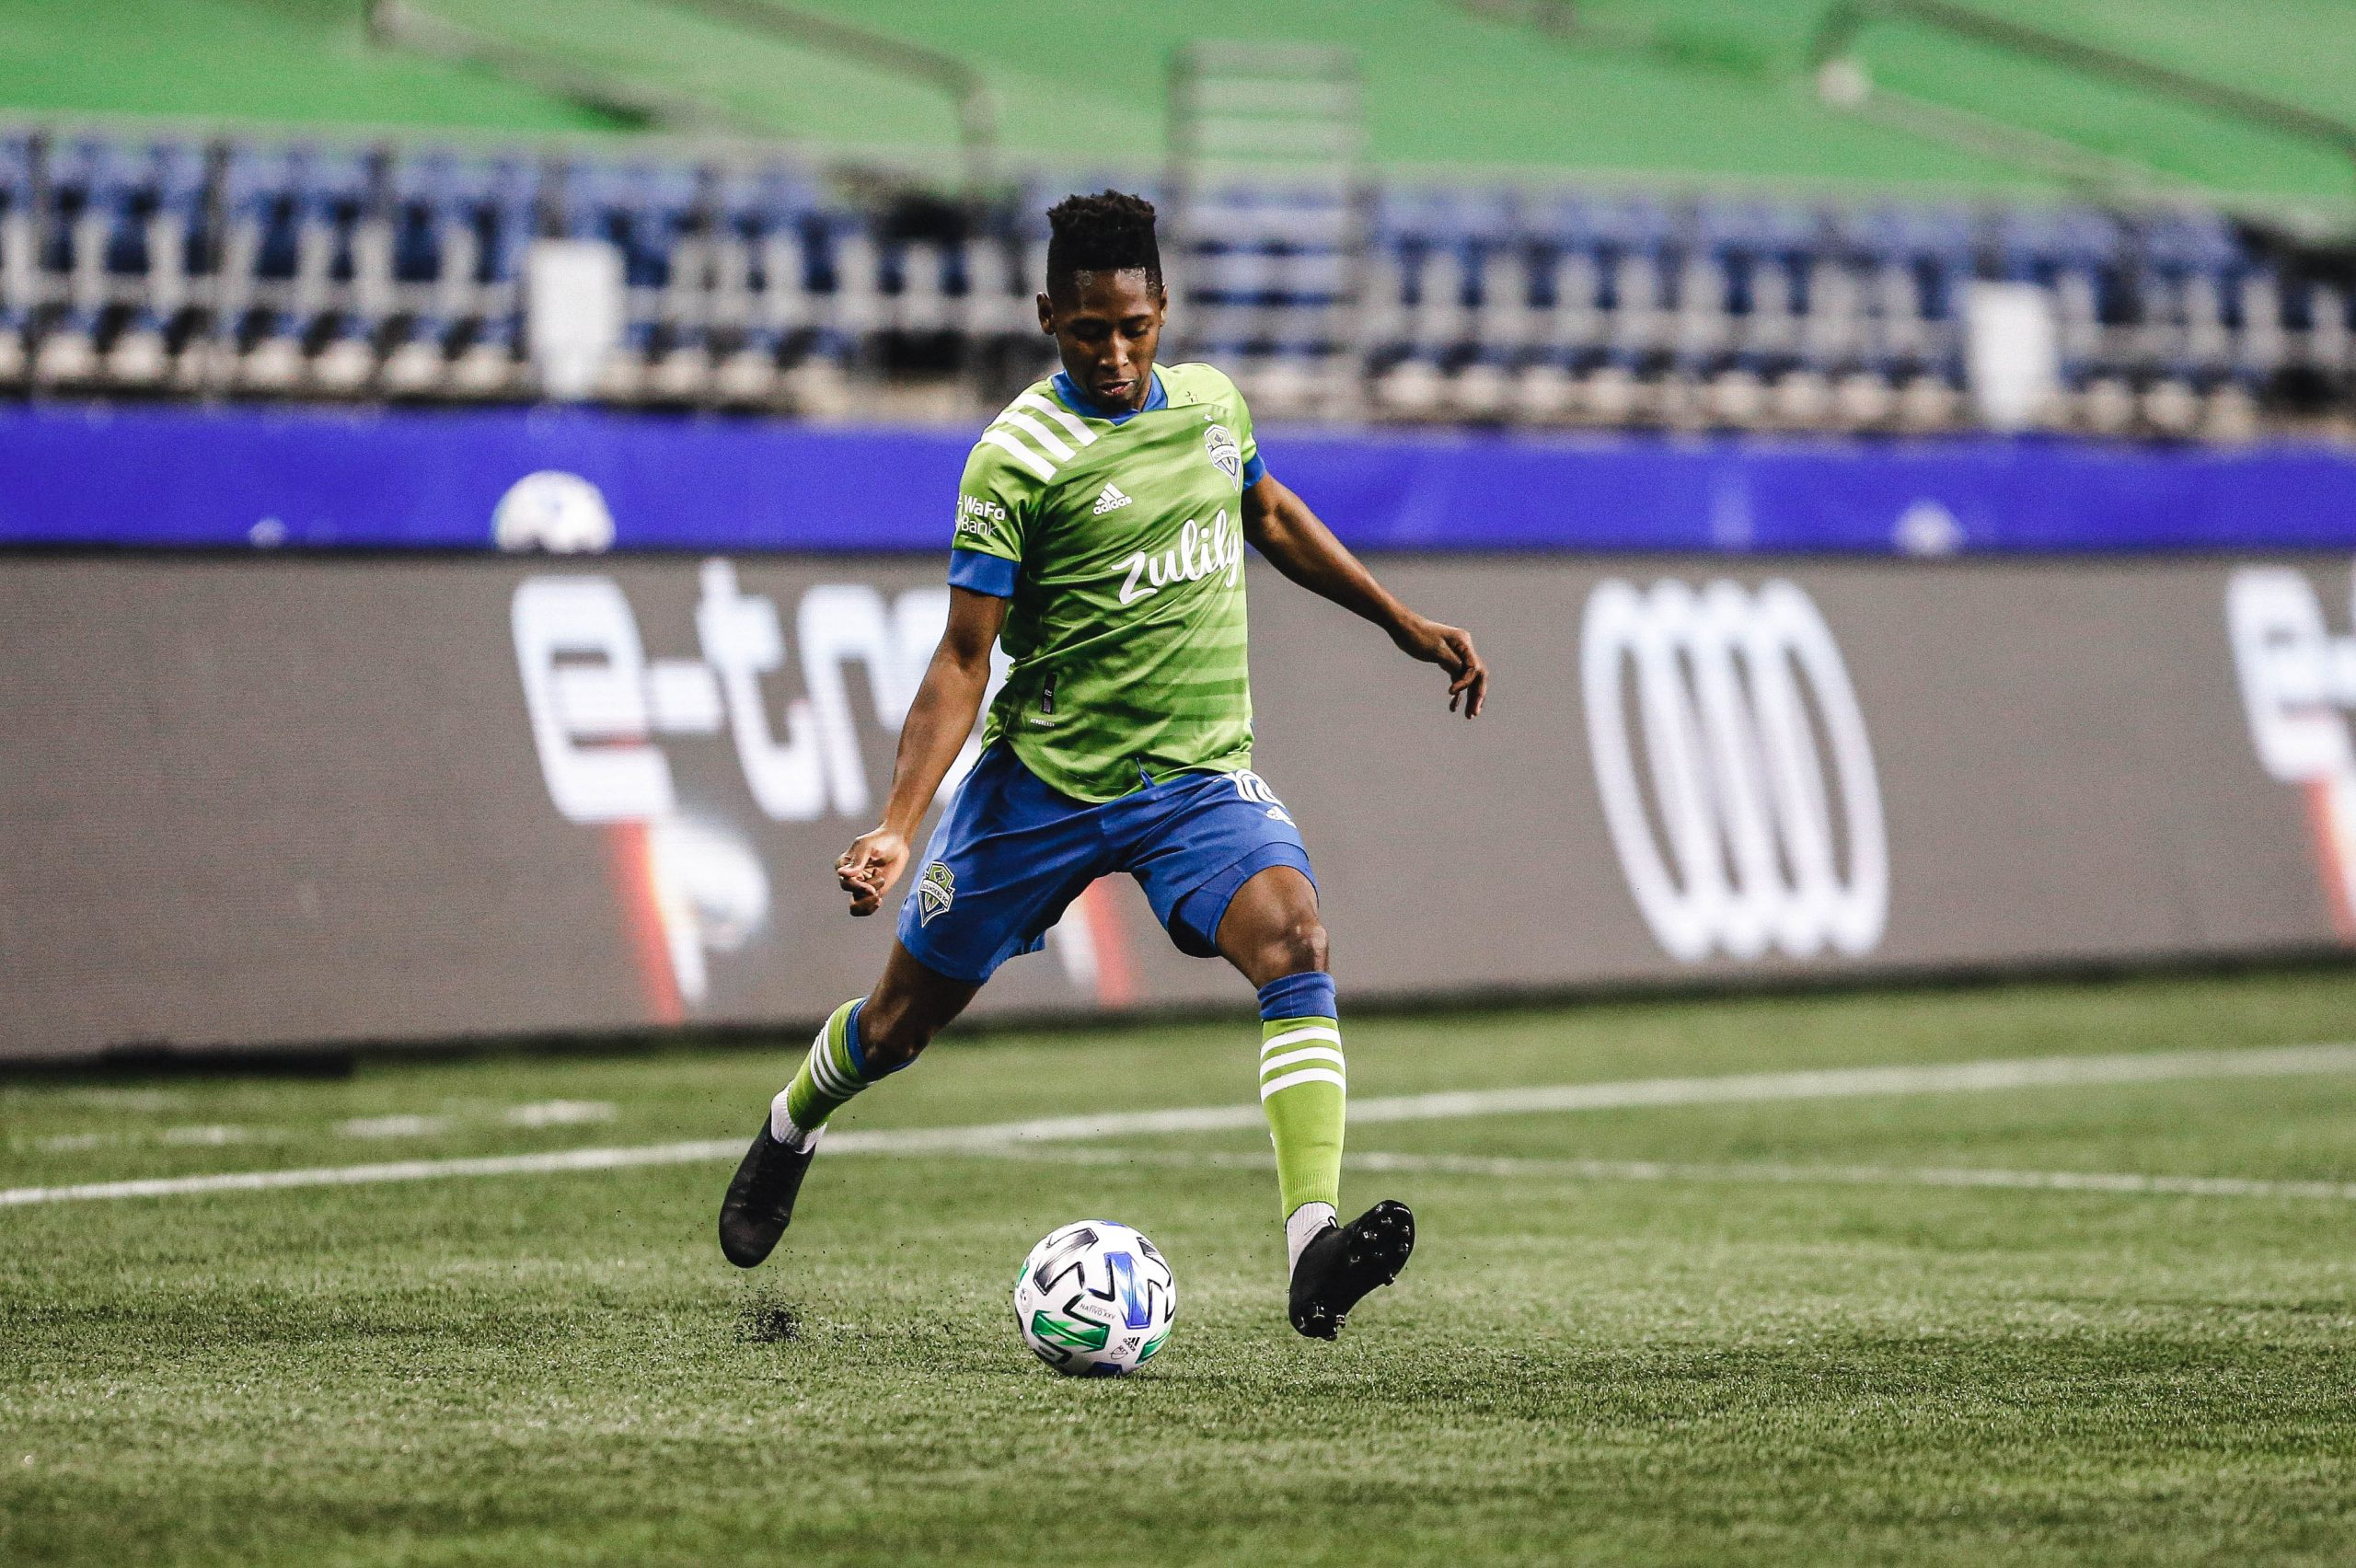 Oct 22, 2020; Seattle, Washington, USA; Seattle Sounders FC defender Kelvin Leerdam (18) passes against the Portland Timbers during the first half at CenturyLink Field. Mandatory Credit: Jennifer Buchanan-USA TODAY Sports